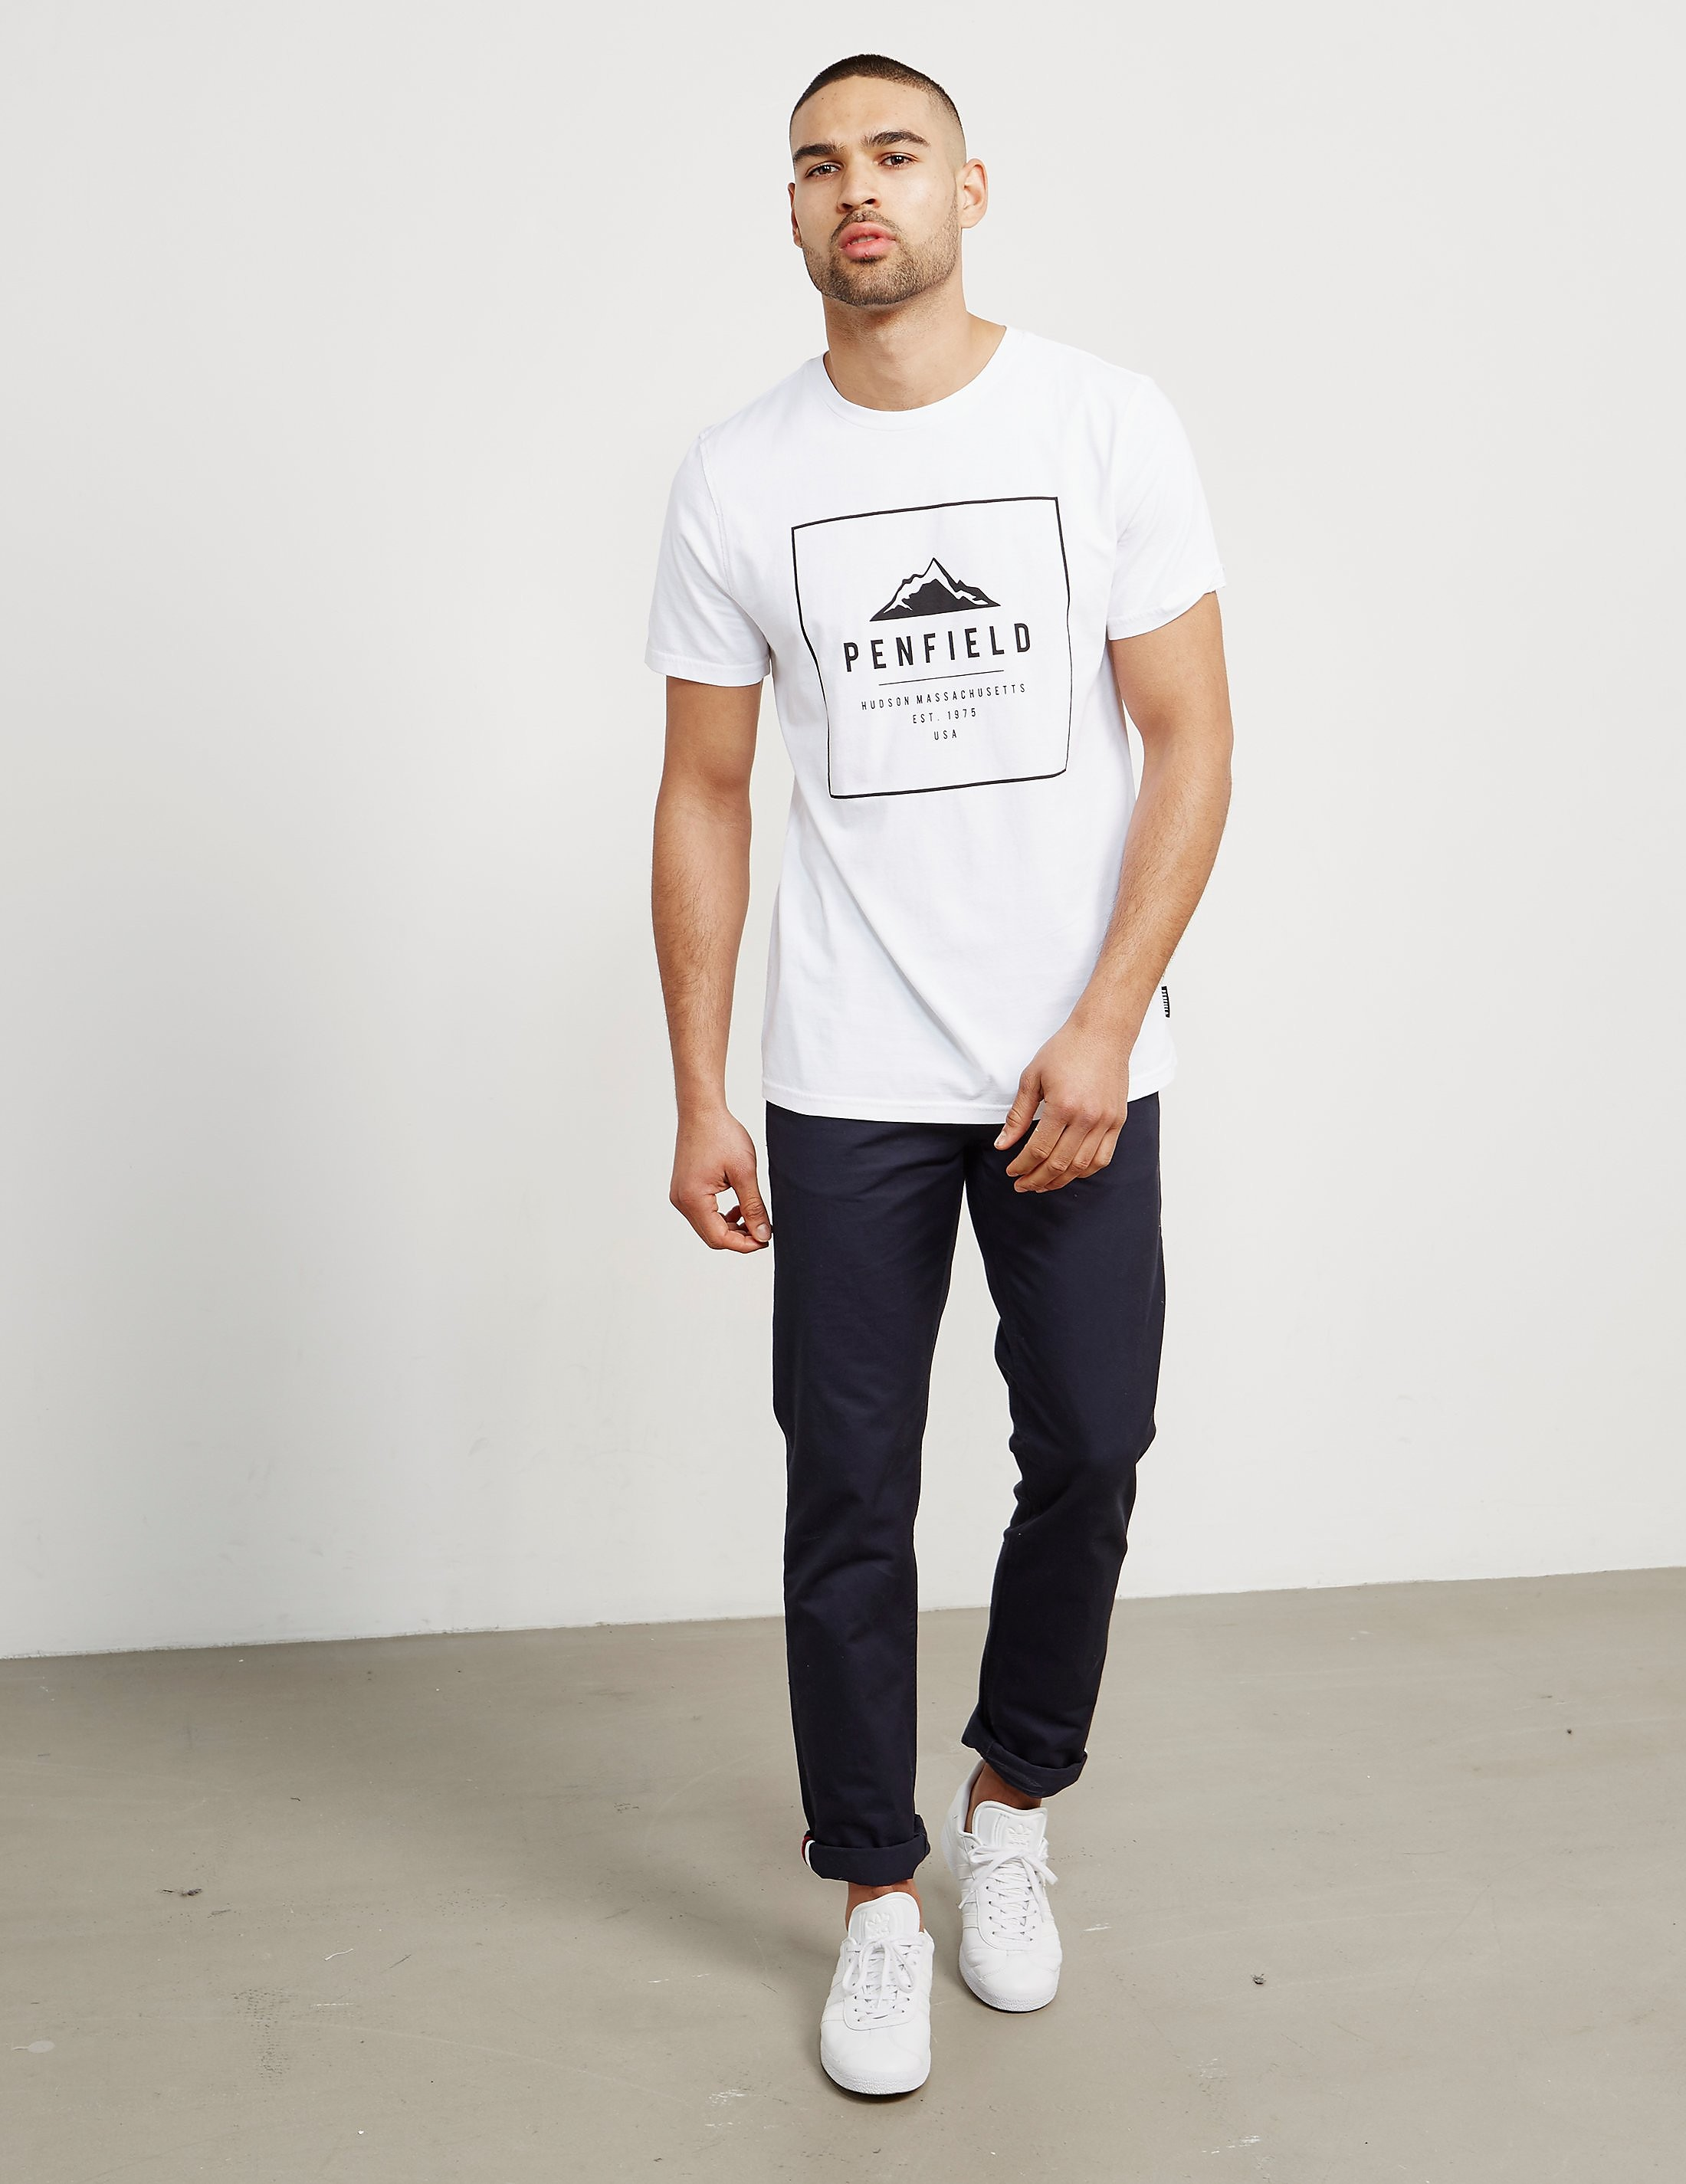 Penfield Alcala Square Logo Short Sleeve T-Shirt